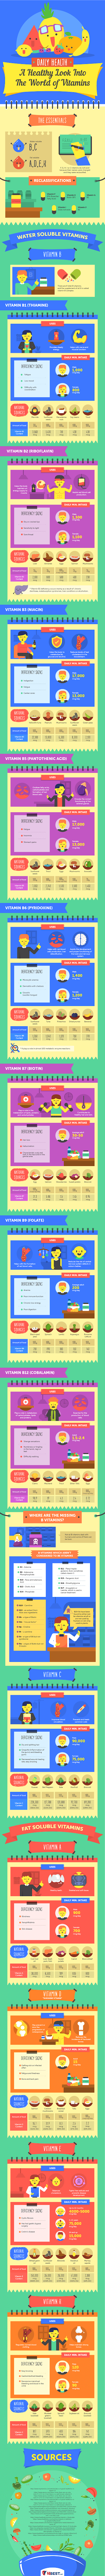 A Healthy Look Into The World Of Vitamins #infographic